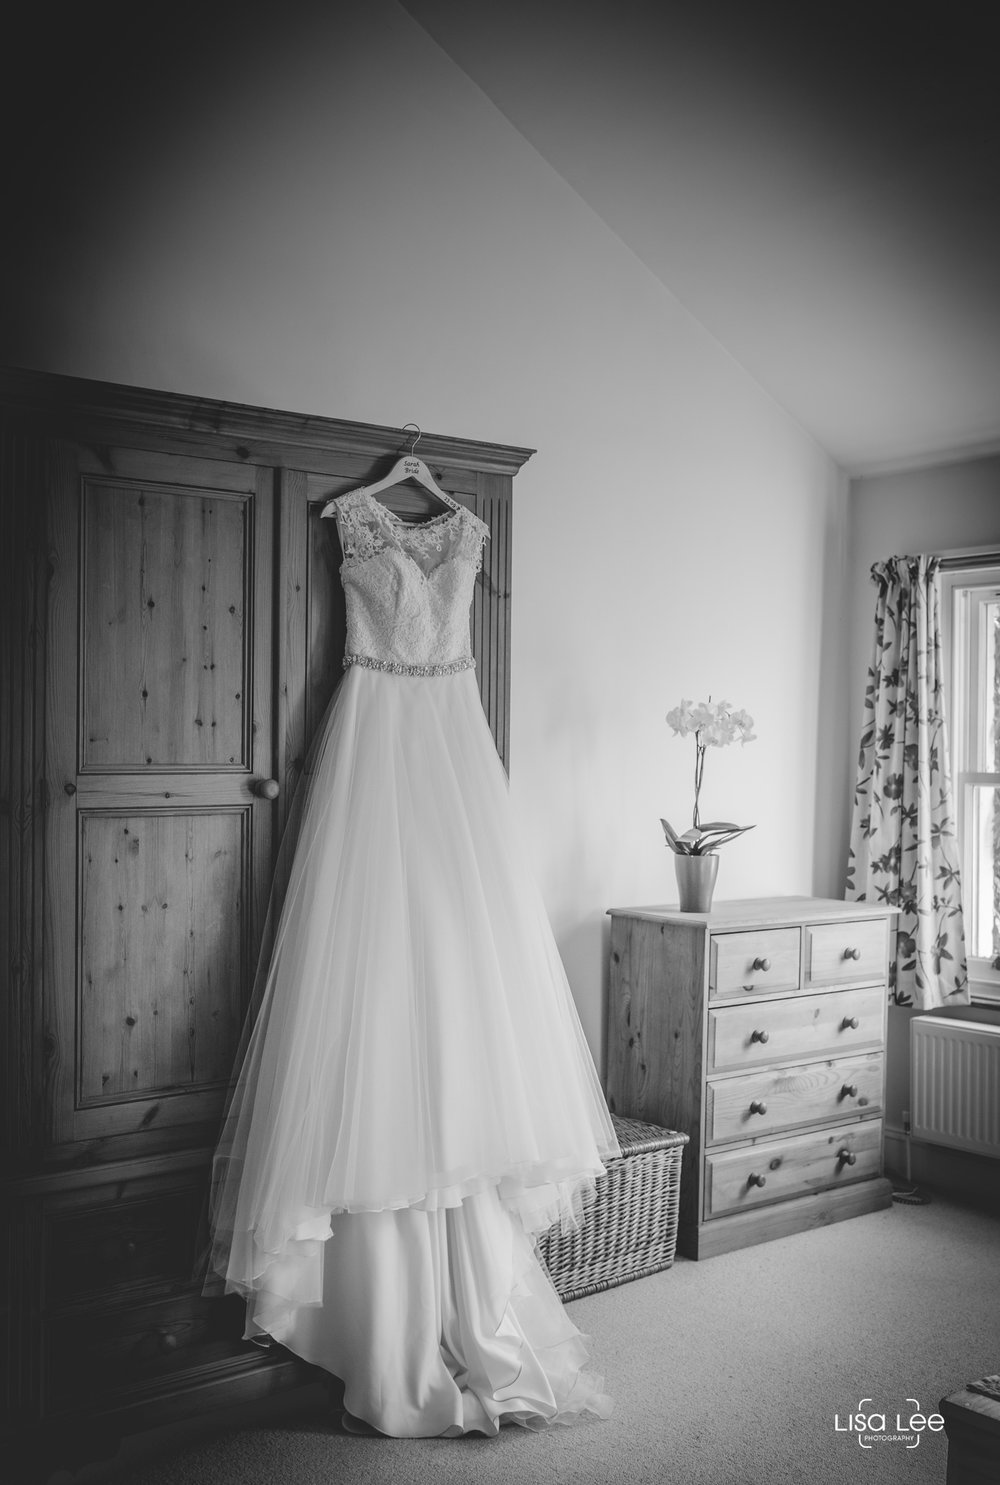 Lisa-Lee-Documentary-Wedding-Photography-Bournemouth-15.jpg